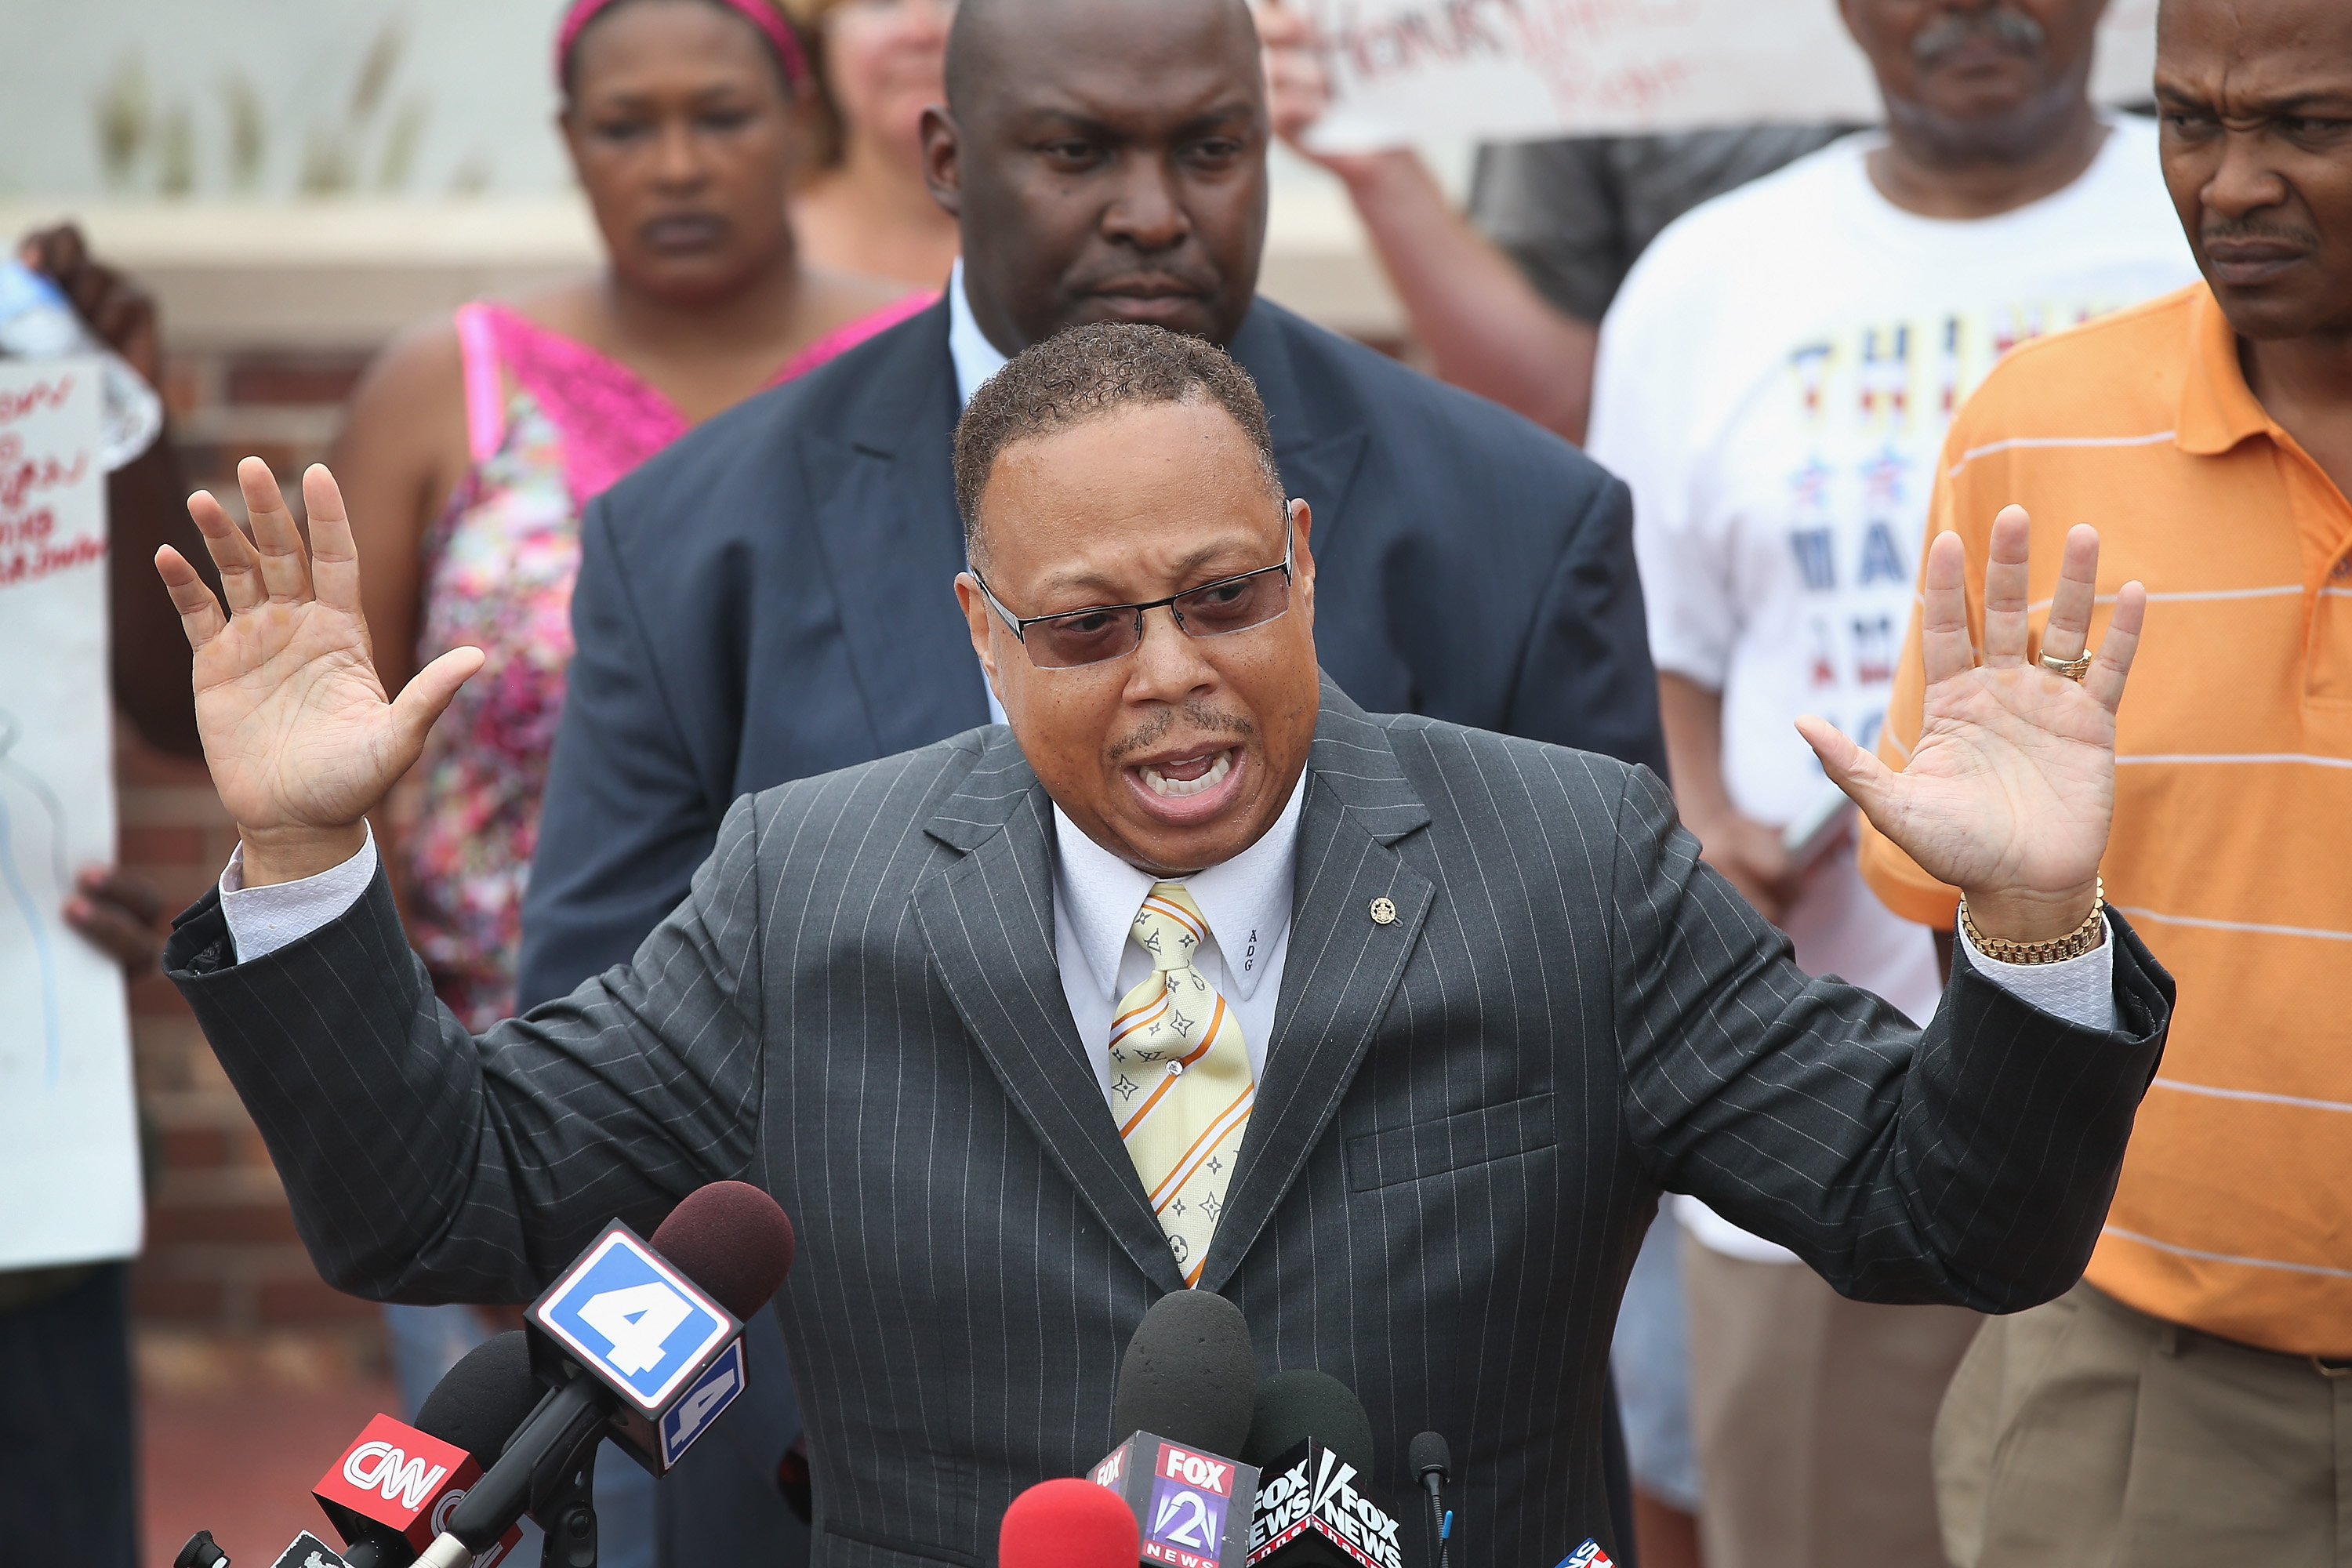 Daryl Parks, an attorney for the family of Michael Brown, addresses the media during a press conference outside the police department on August 15, 2014 in Ferguson, Missouri.